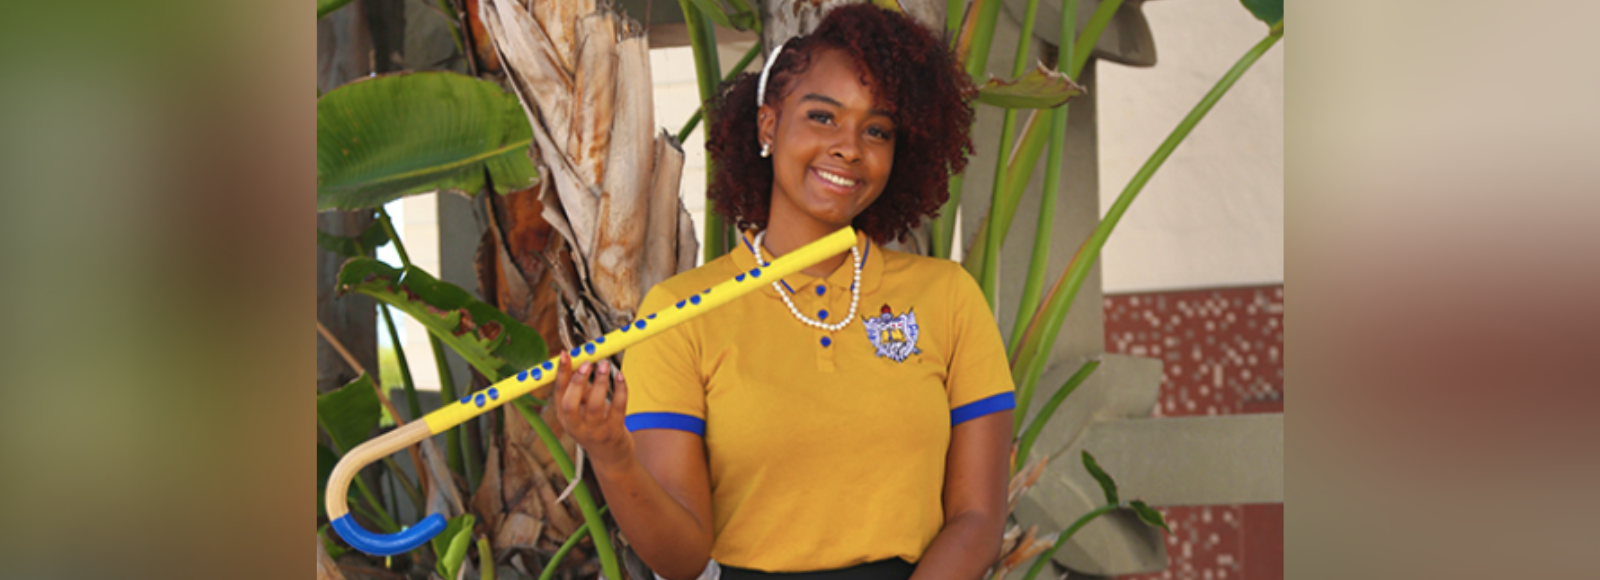 School of Communication Student Fosters Community Within the Community